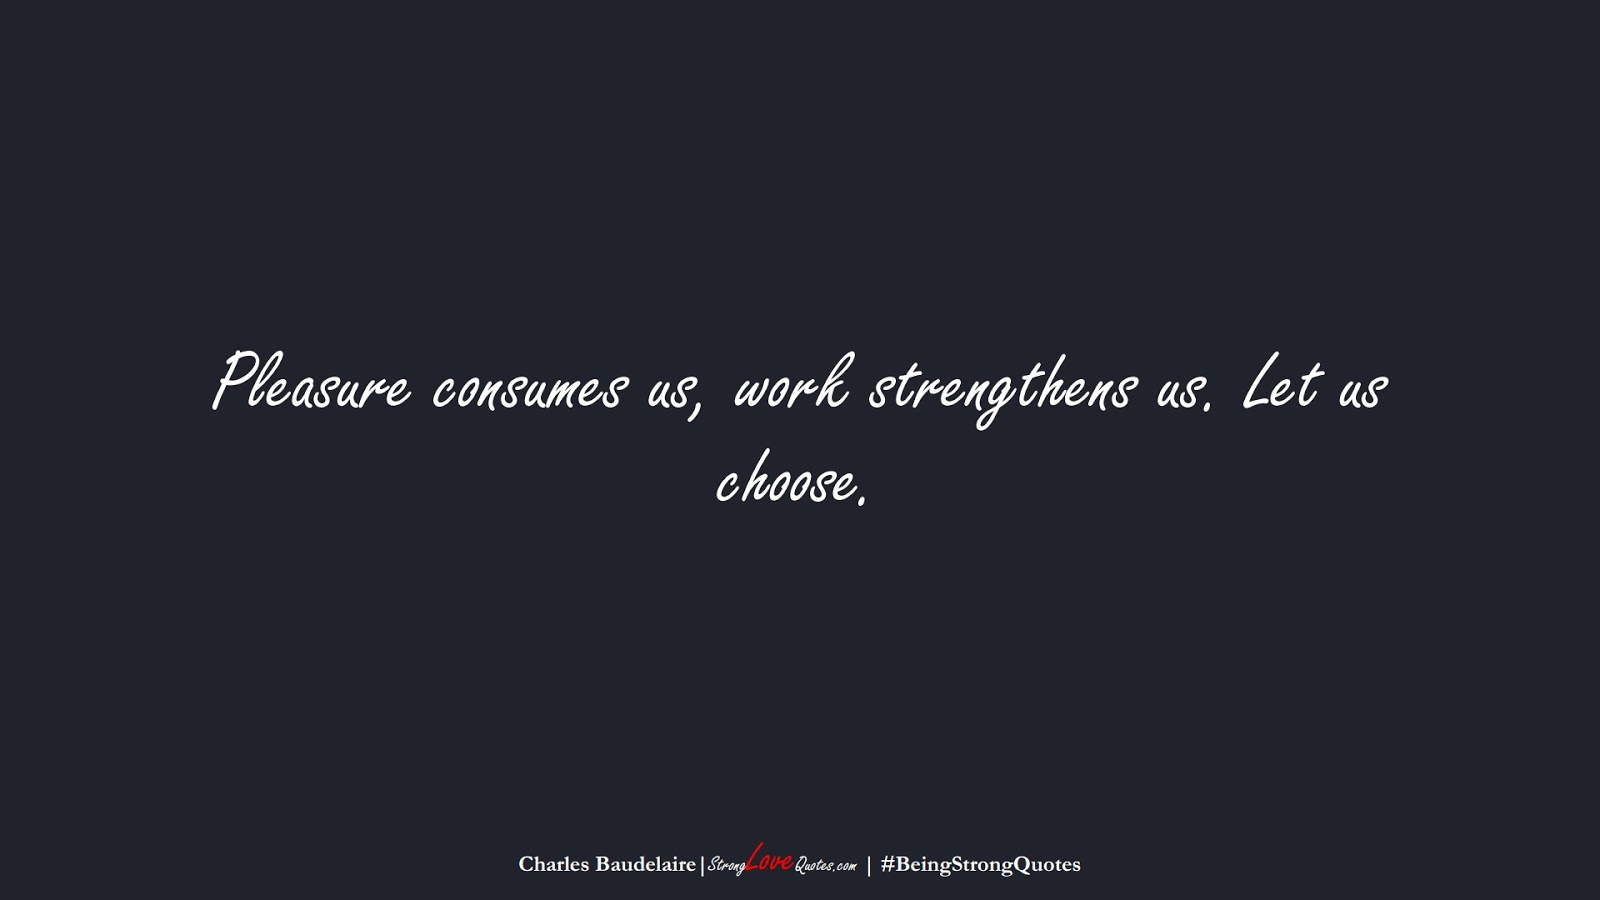 Pleasure consumes us, work strengthens us. Let us choose. (Charles Baudelaire);  #BeingStrongQuotes